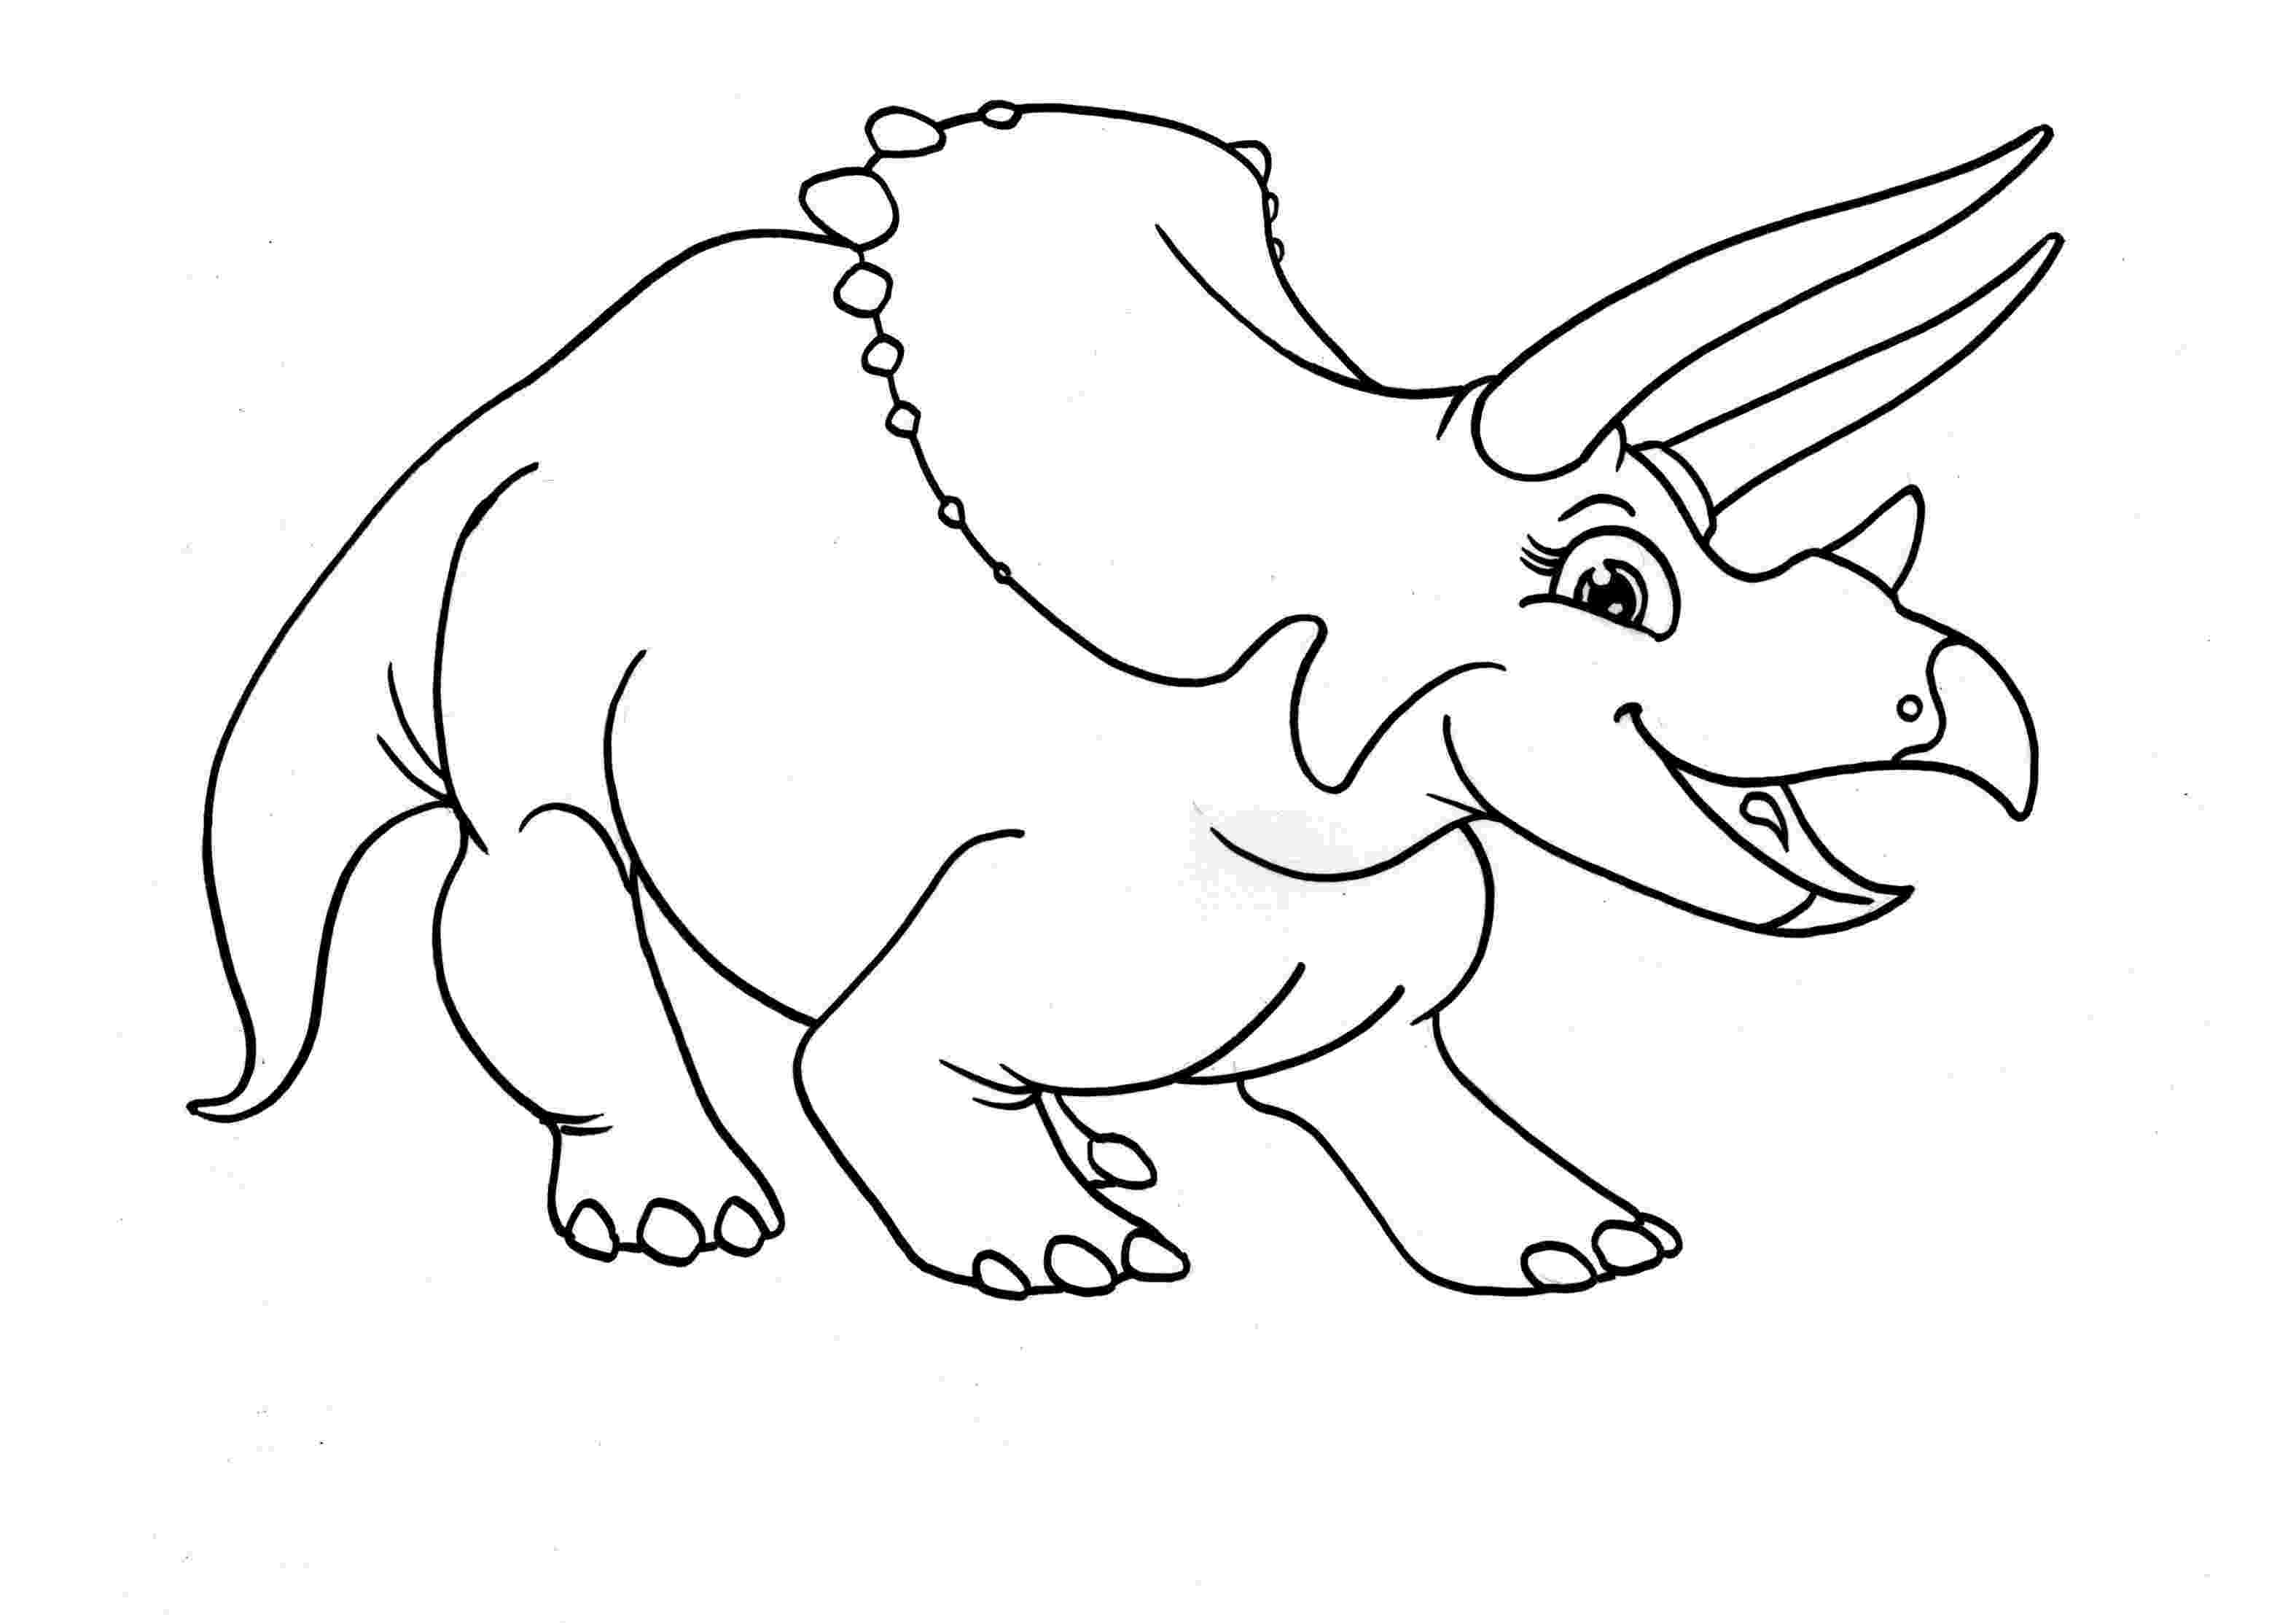 triceratops picture free printable triceratops coloring pages for kids triceratops picture